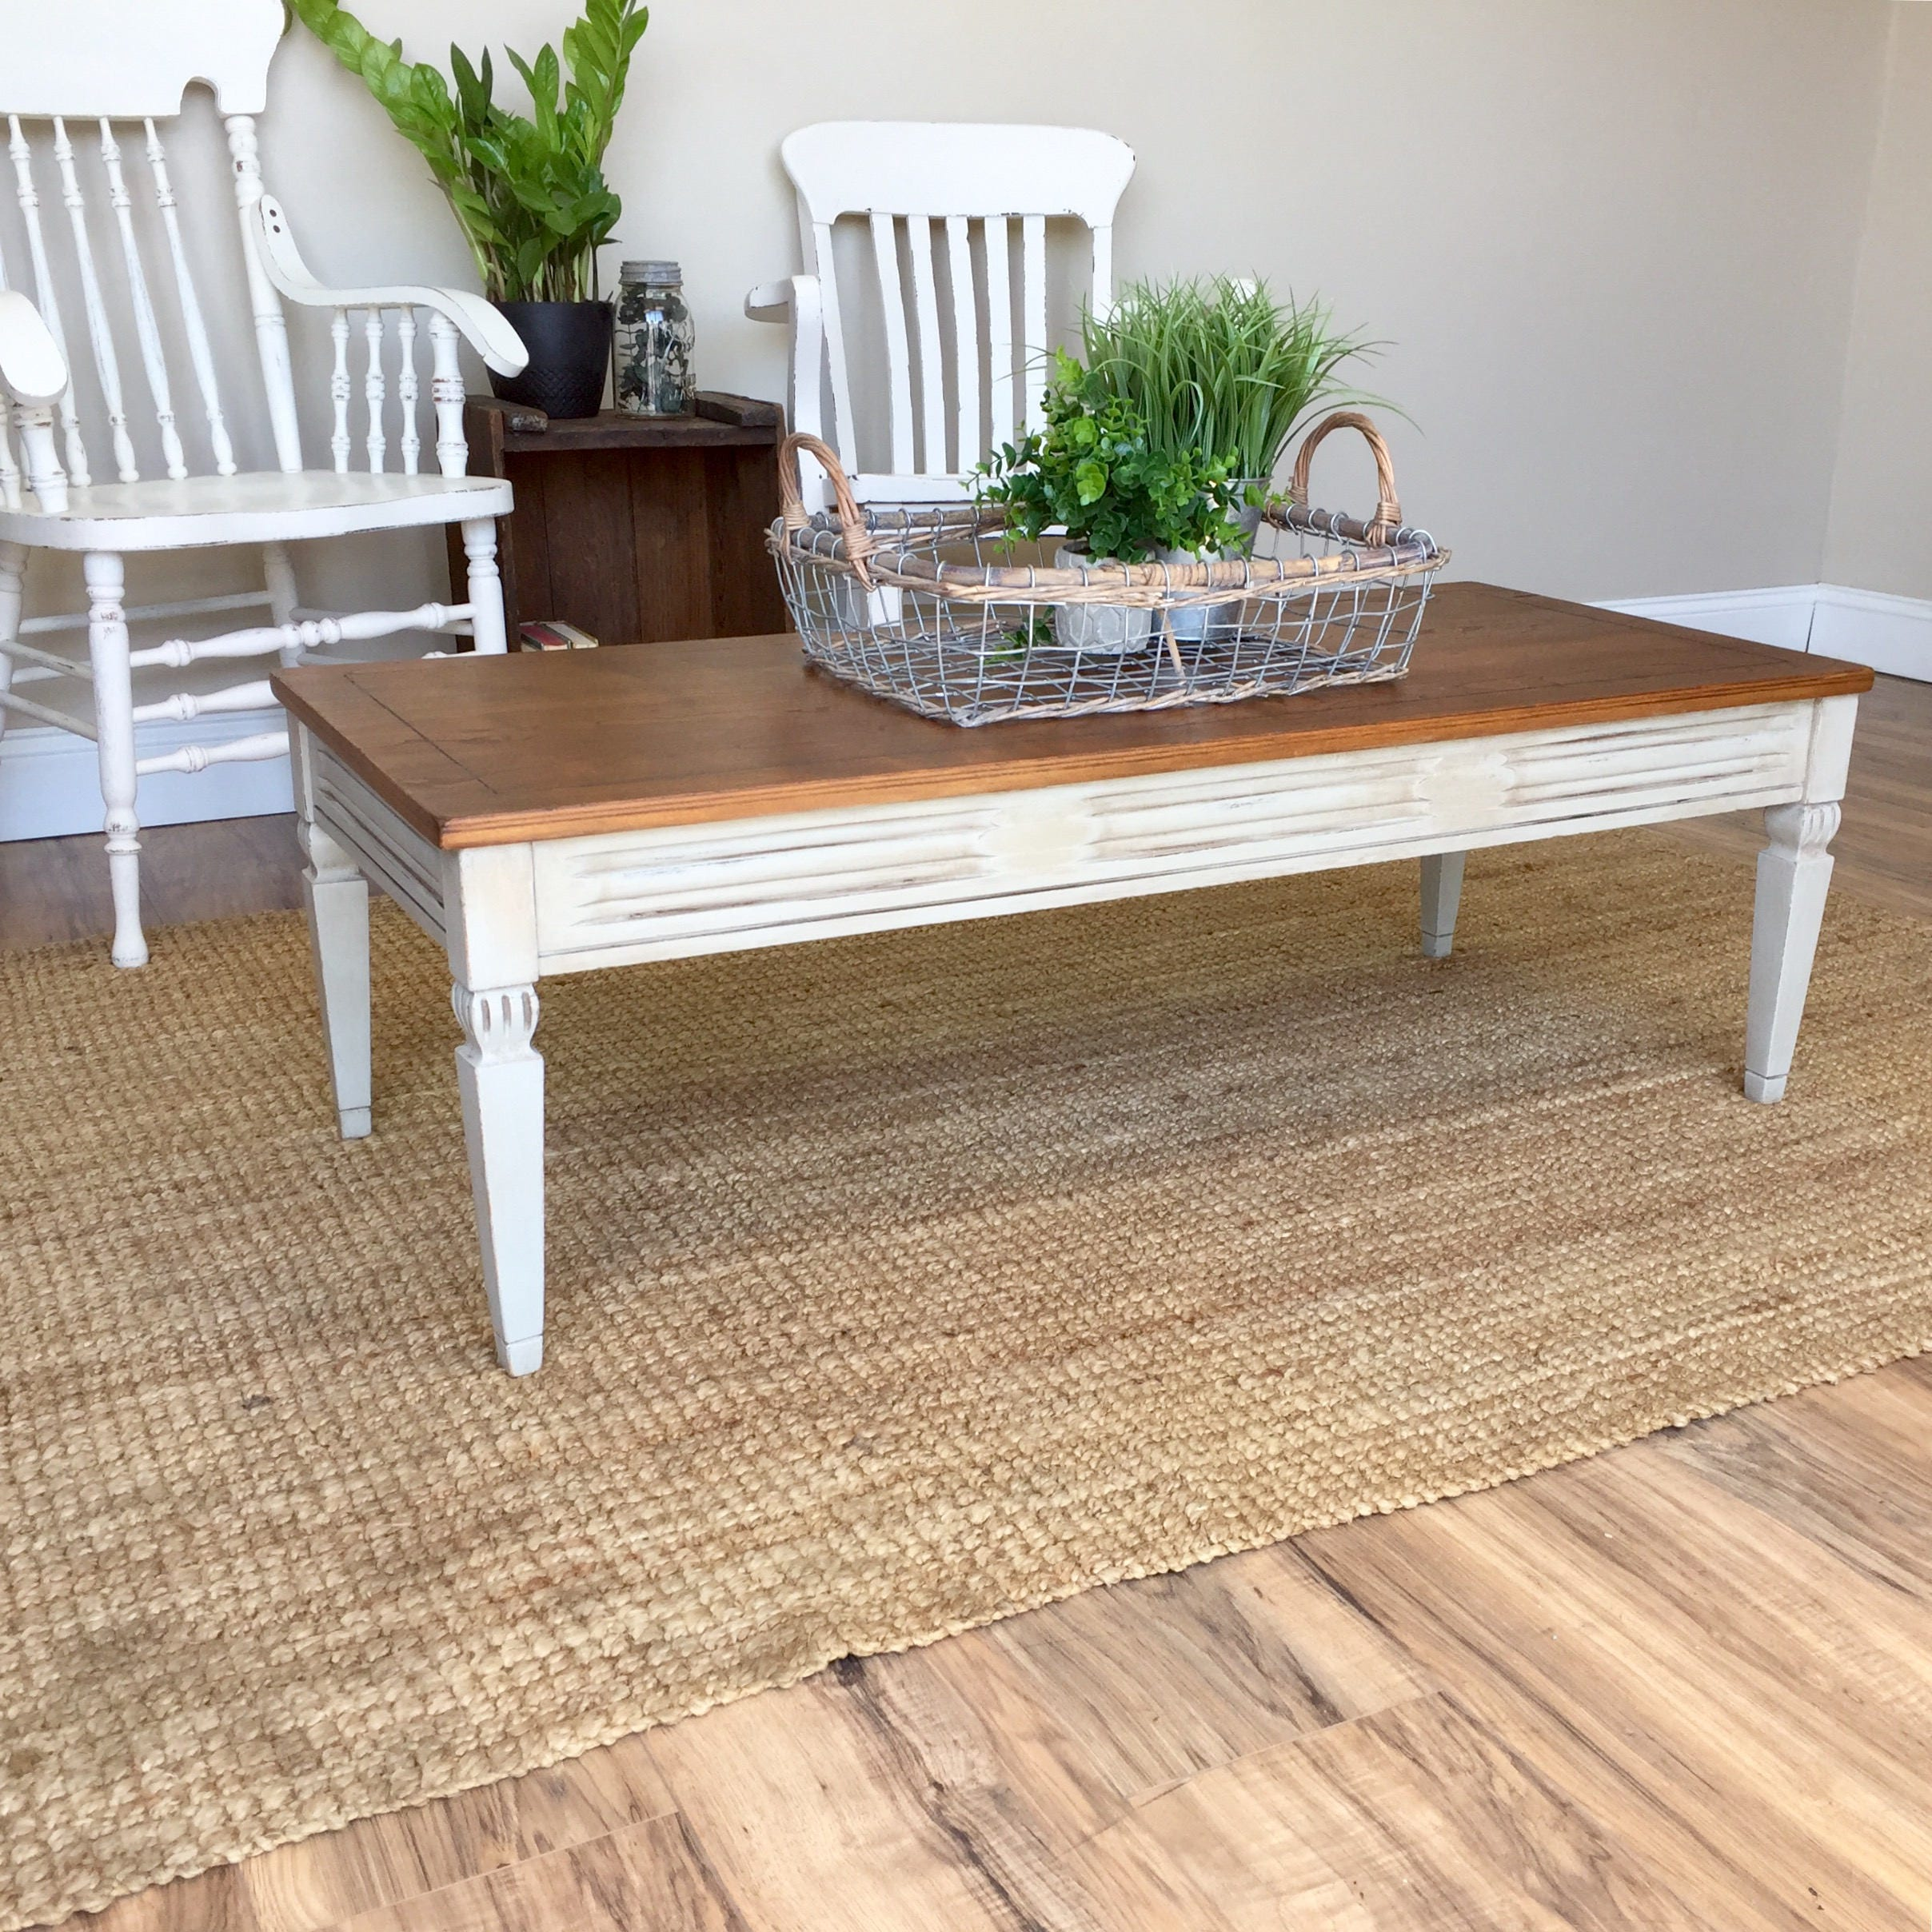 Small White Coffee Table Vintage Coffee Table Small Coffee Table Real Wood Furniture